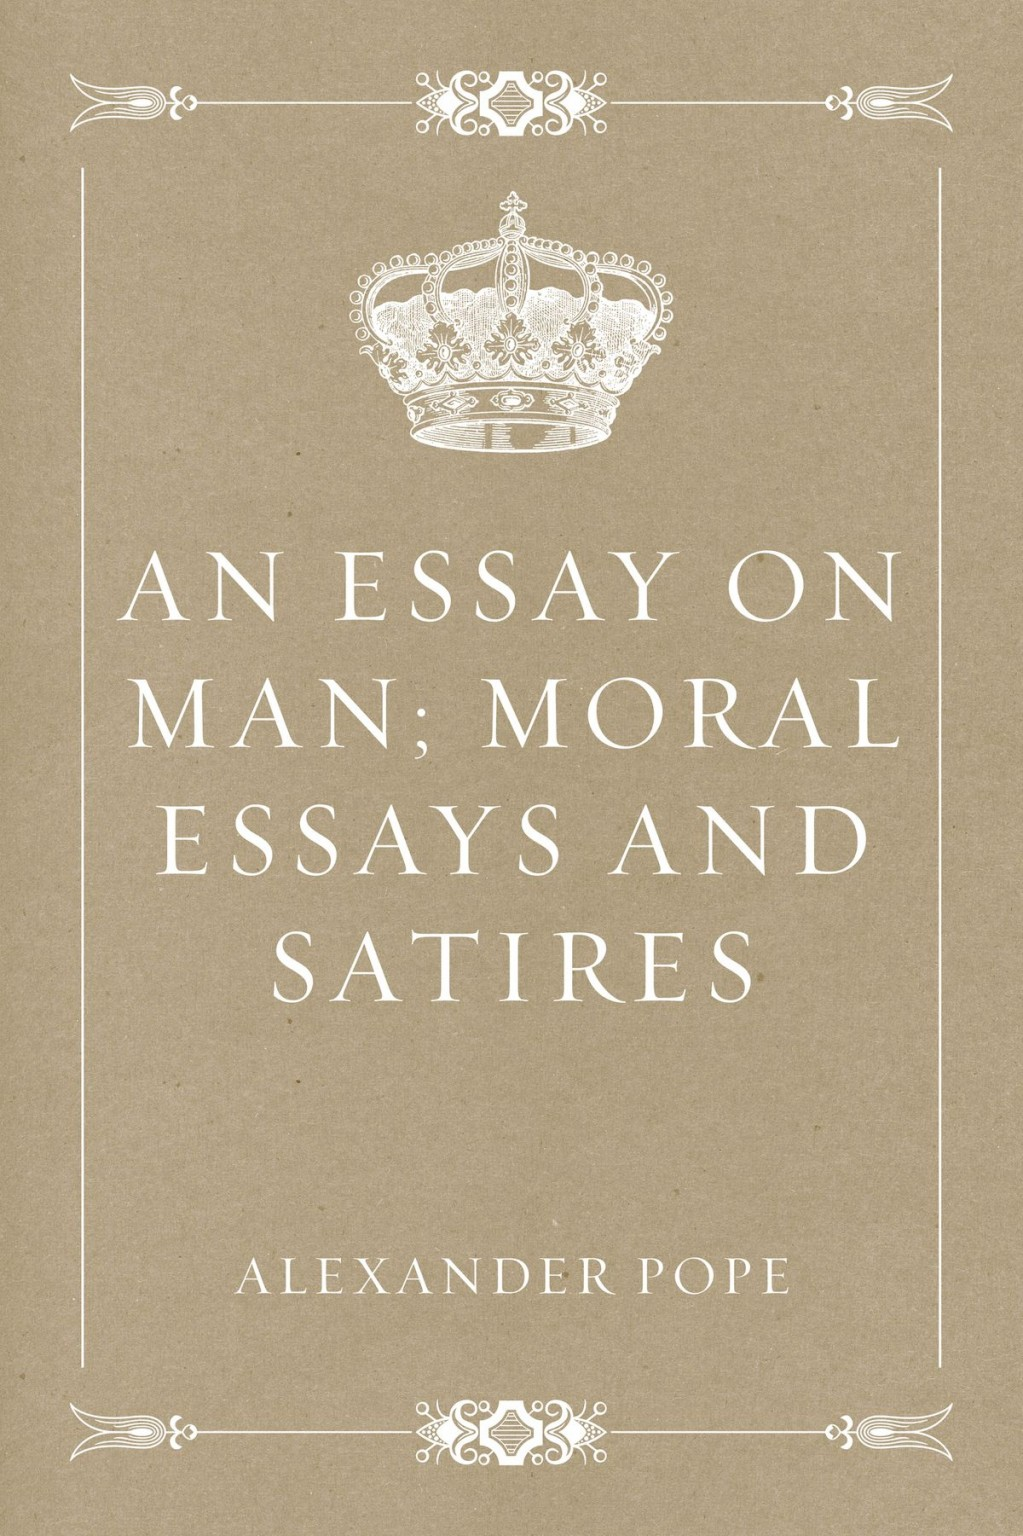 005 An Essay On Man Moral Essays And Satires Fantastic Epistle 2 Meaning Summary Sparknotes Part 1 Large